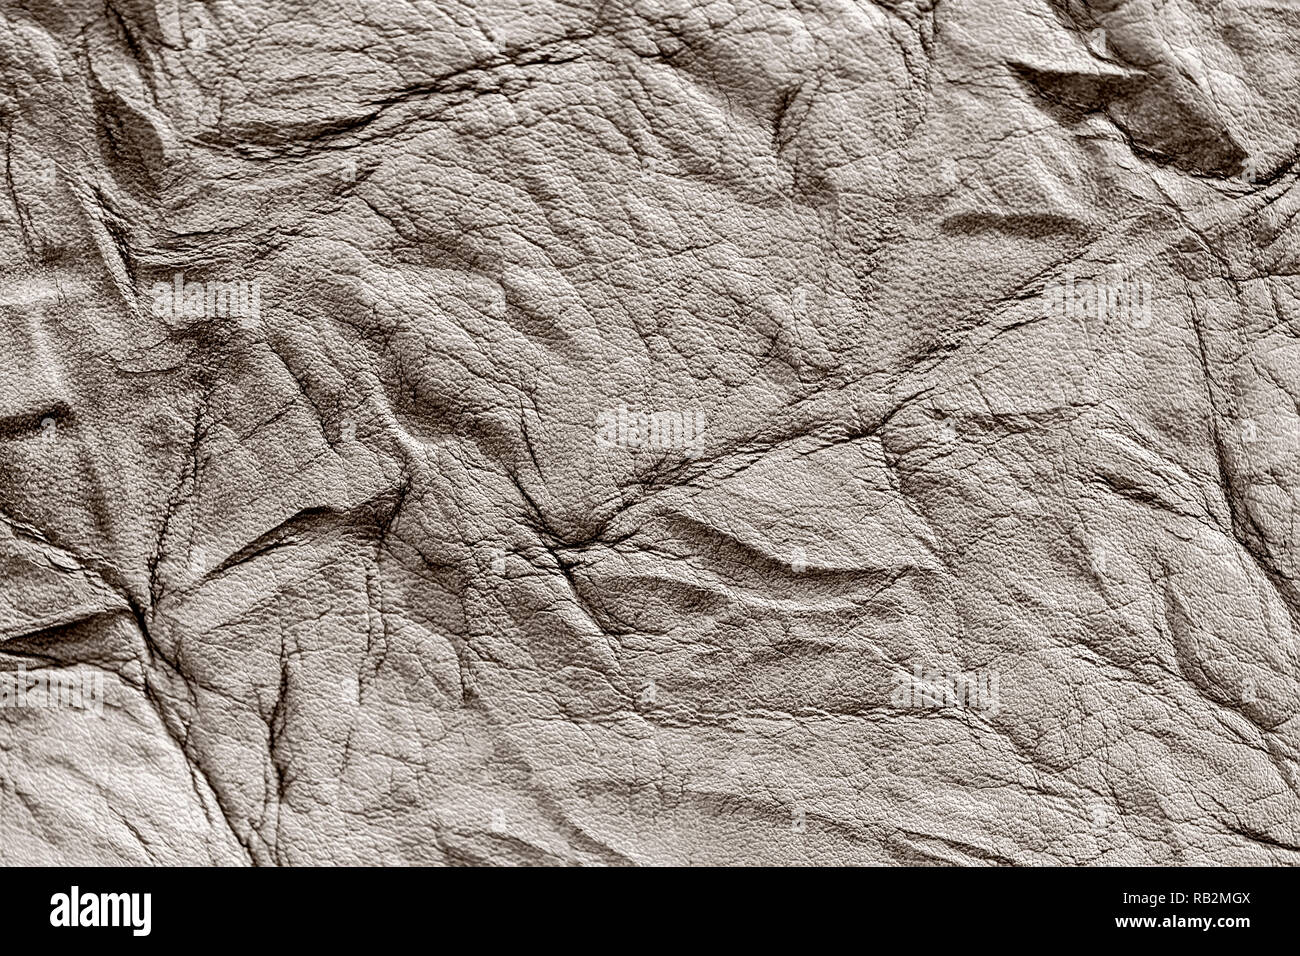 Texture of rough crumpled genuine leather close-up, with embossed wrinkles, matte surface, trendy background - Stock Image